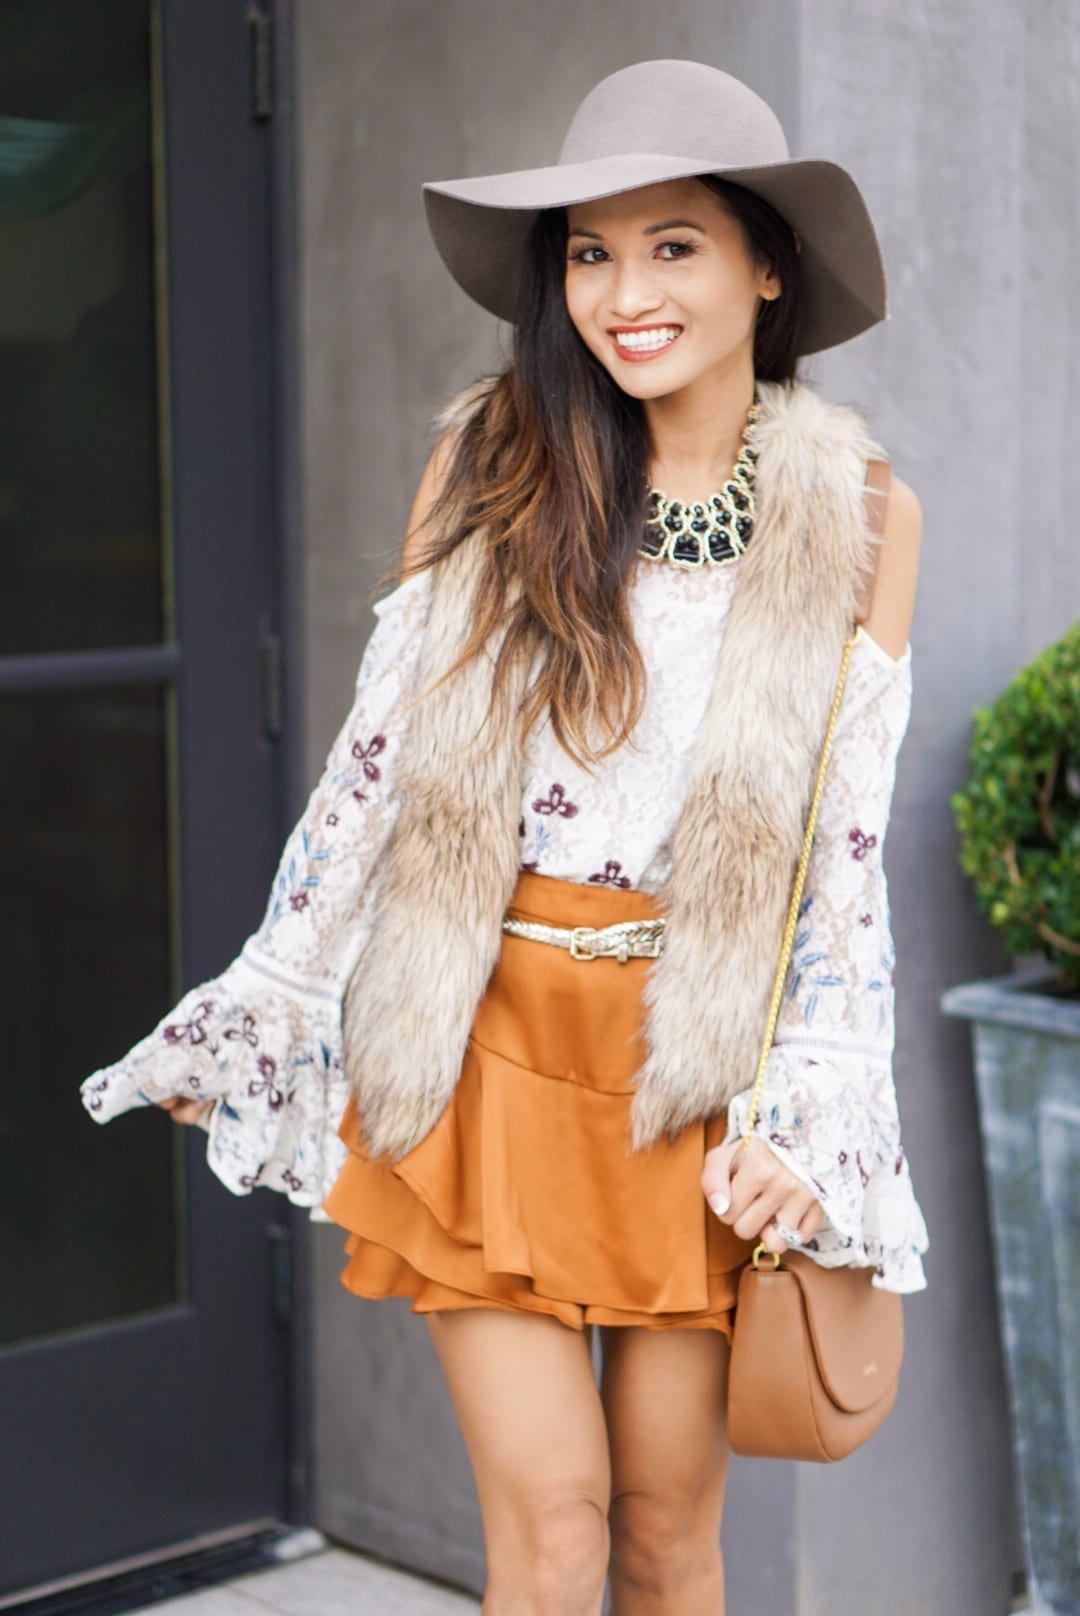 lipault bag, saddle bag, floppy hat, bell sleeve top, fall outfit, November outfit, satin skirt, fall look, open toe booties, statement necklace, lace top